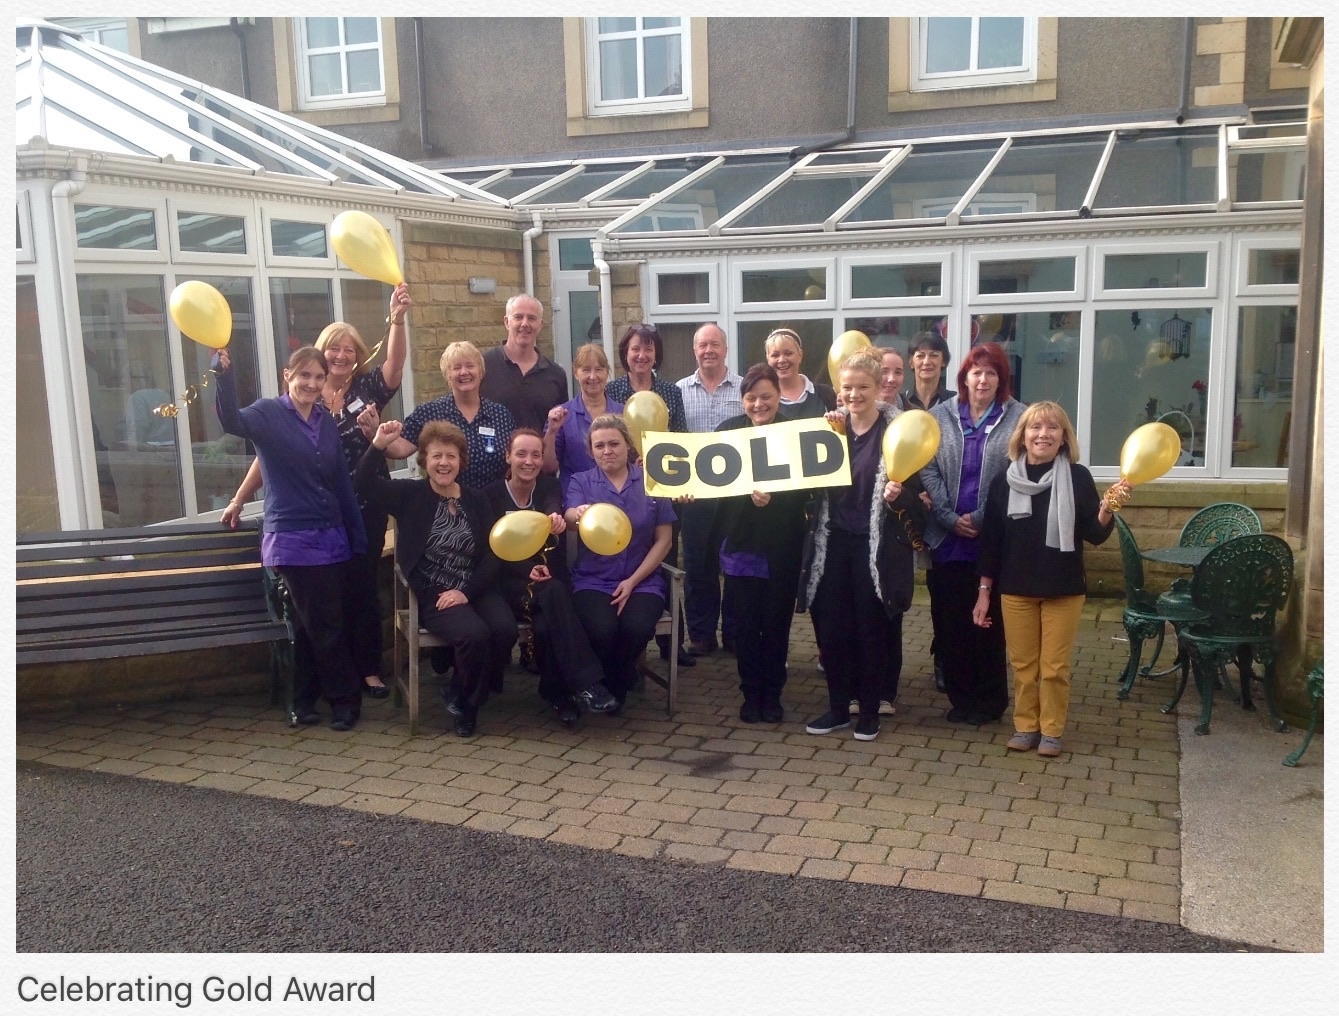 Celebrating our Gold Award